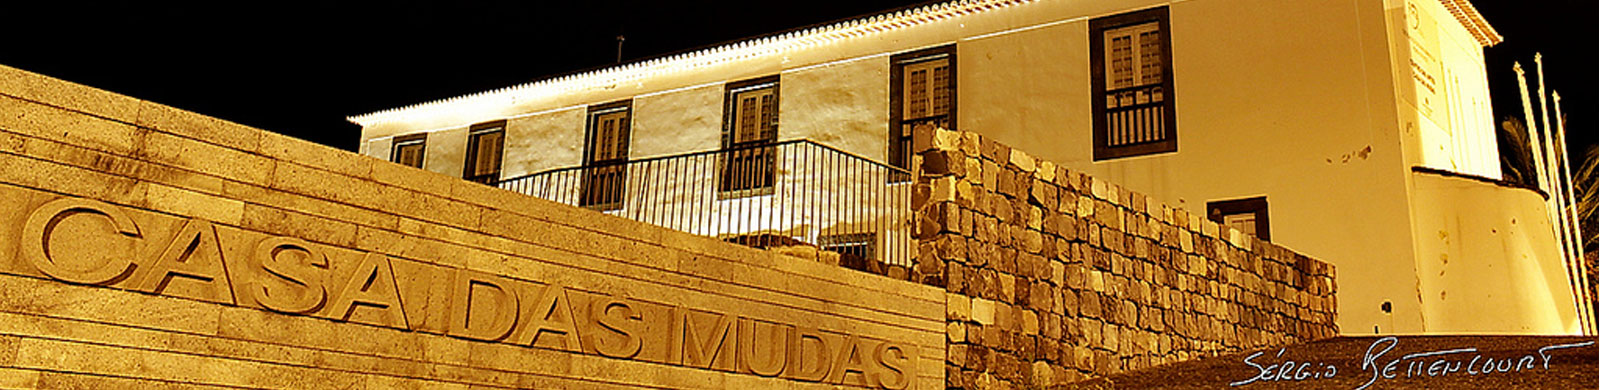 Holidays Madeira Villas Cottages Houses Apartments Hotels